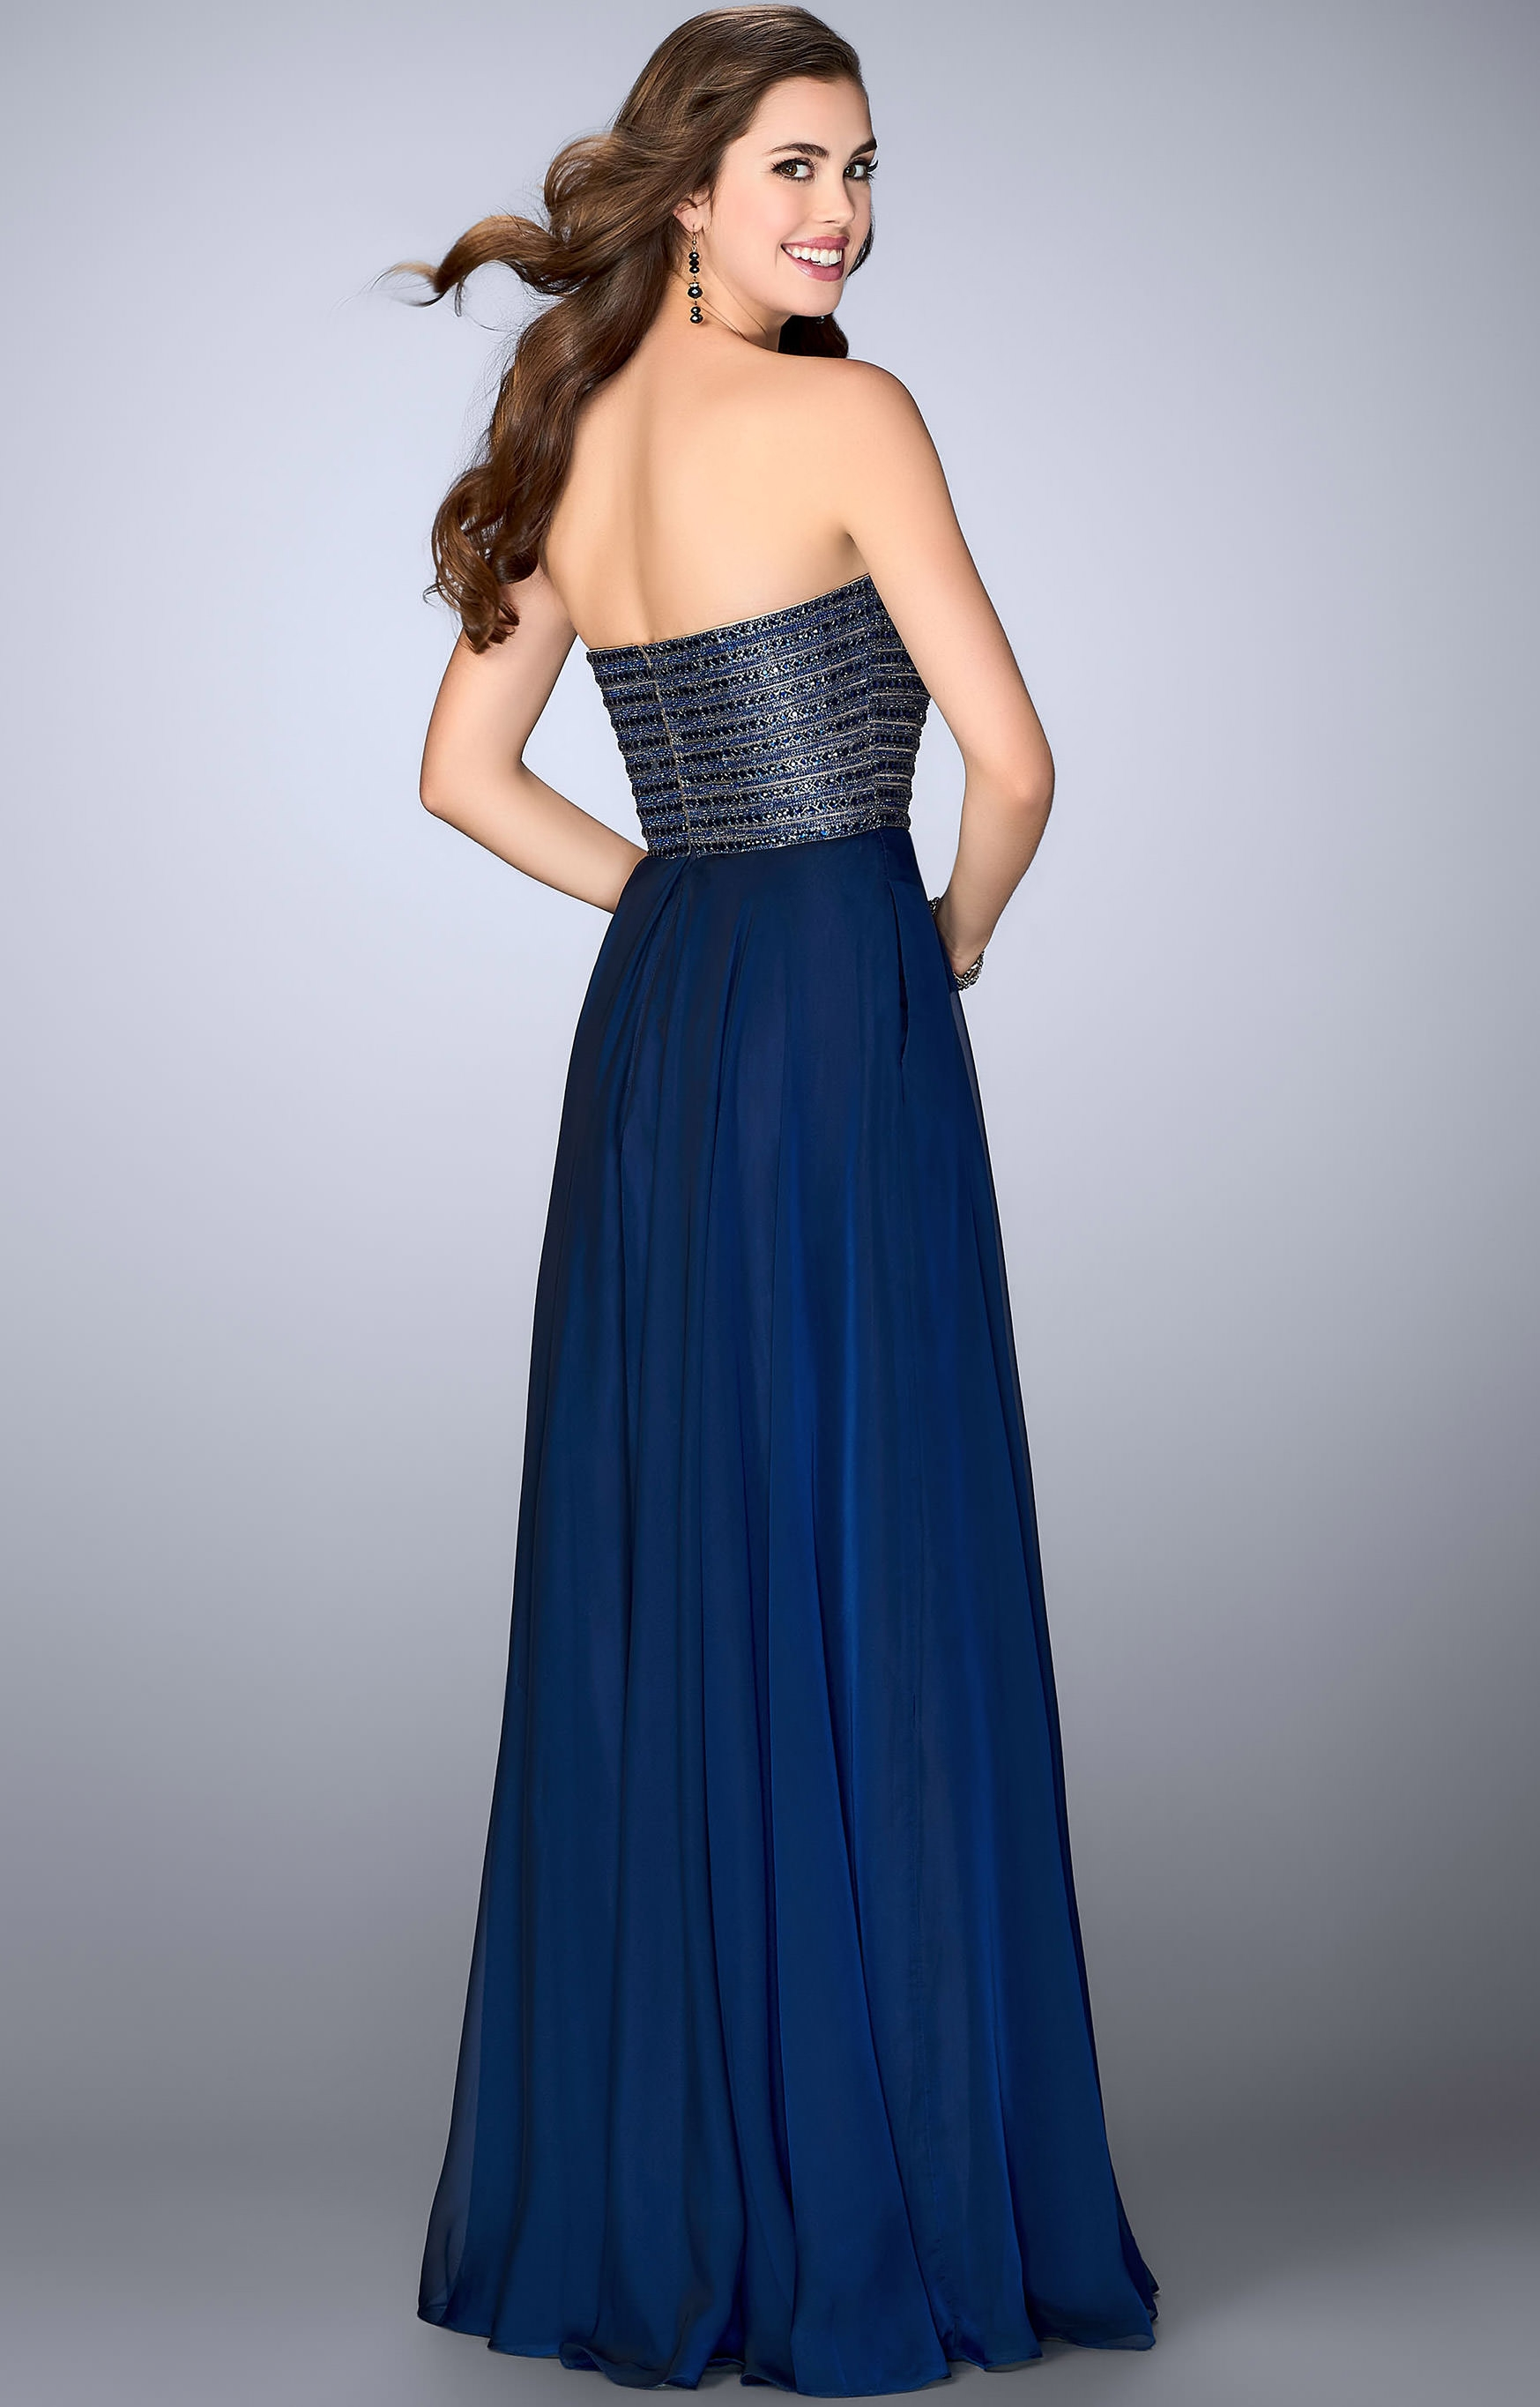 La Femme 23197 - Strapless Sweetheart Stretch Satin with